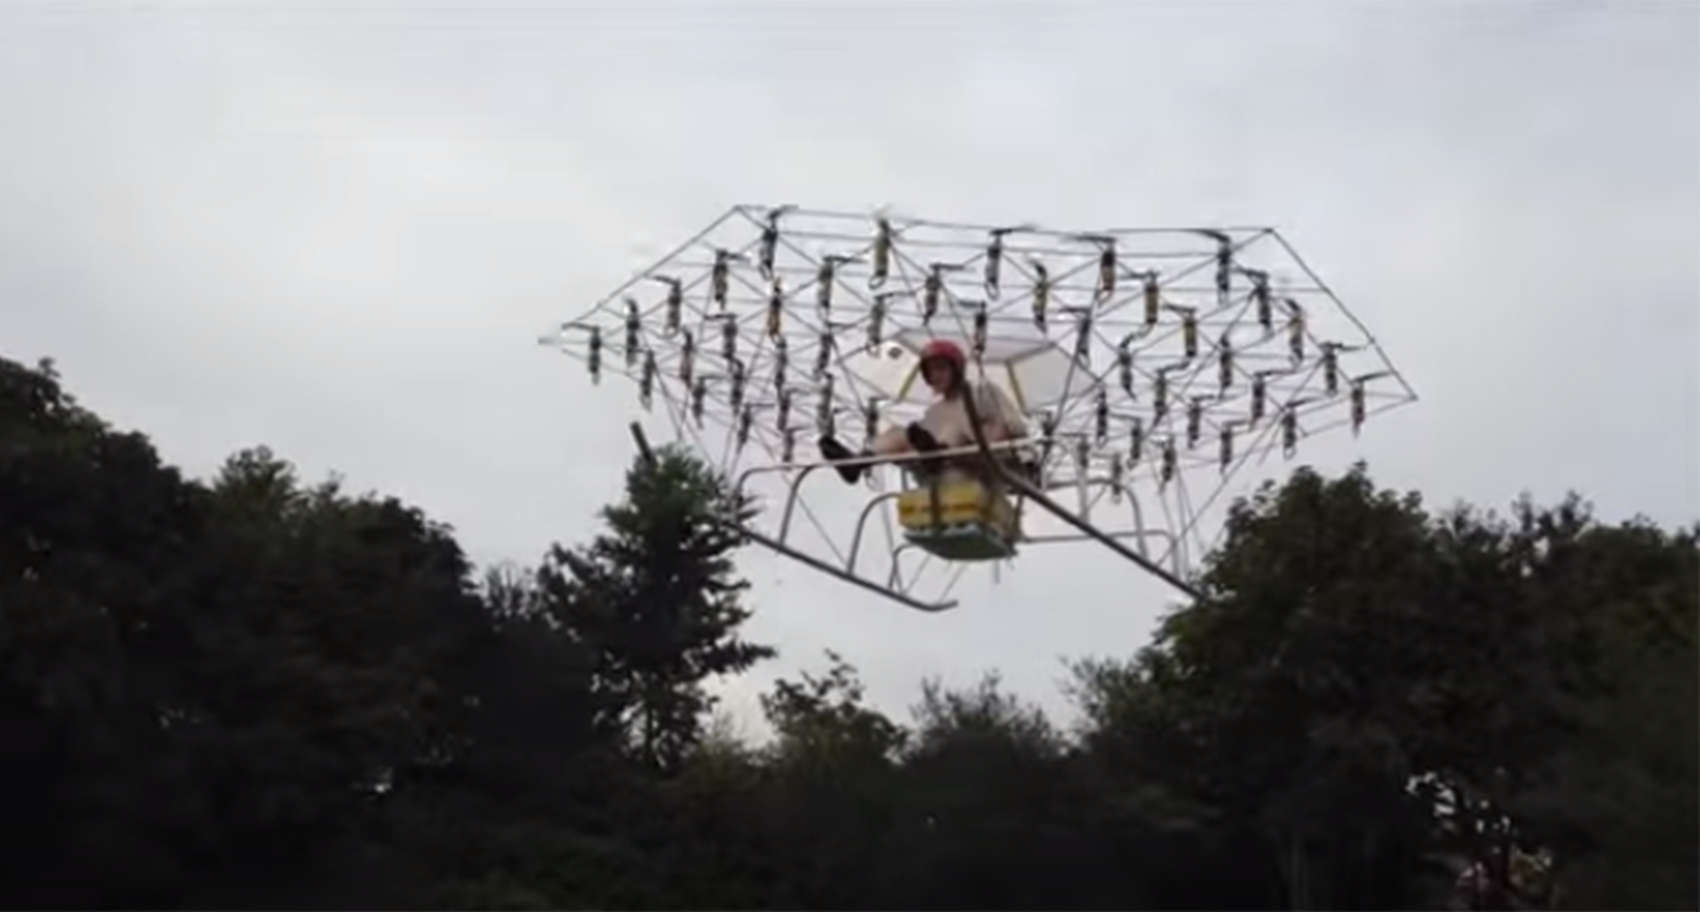 chair with balloons rocking replacement seat slats first manned drone uses 54 propellers | cult of mac